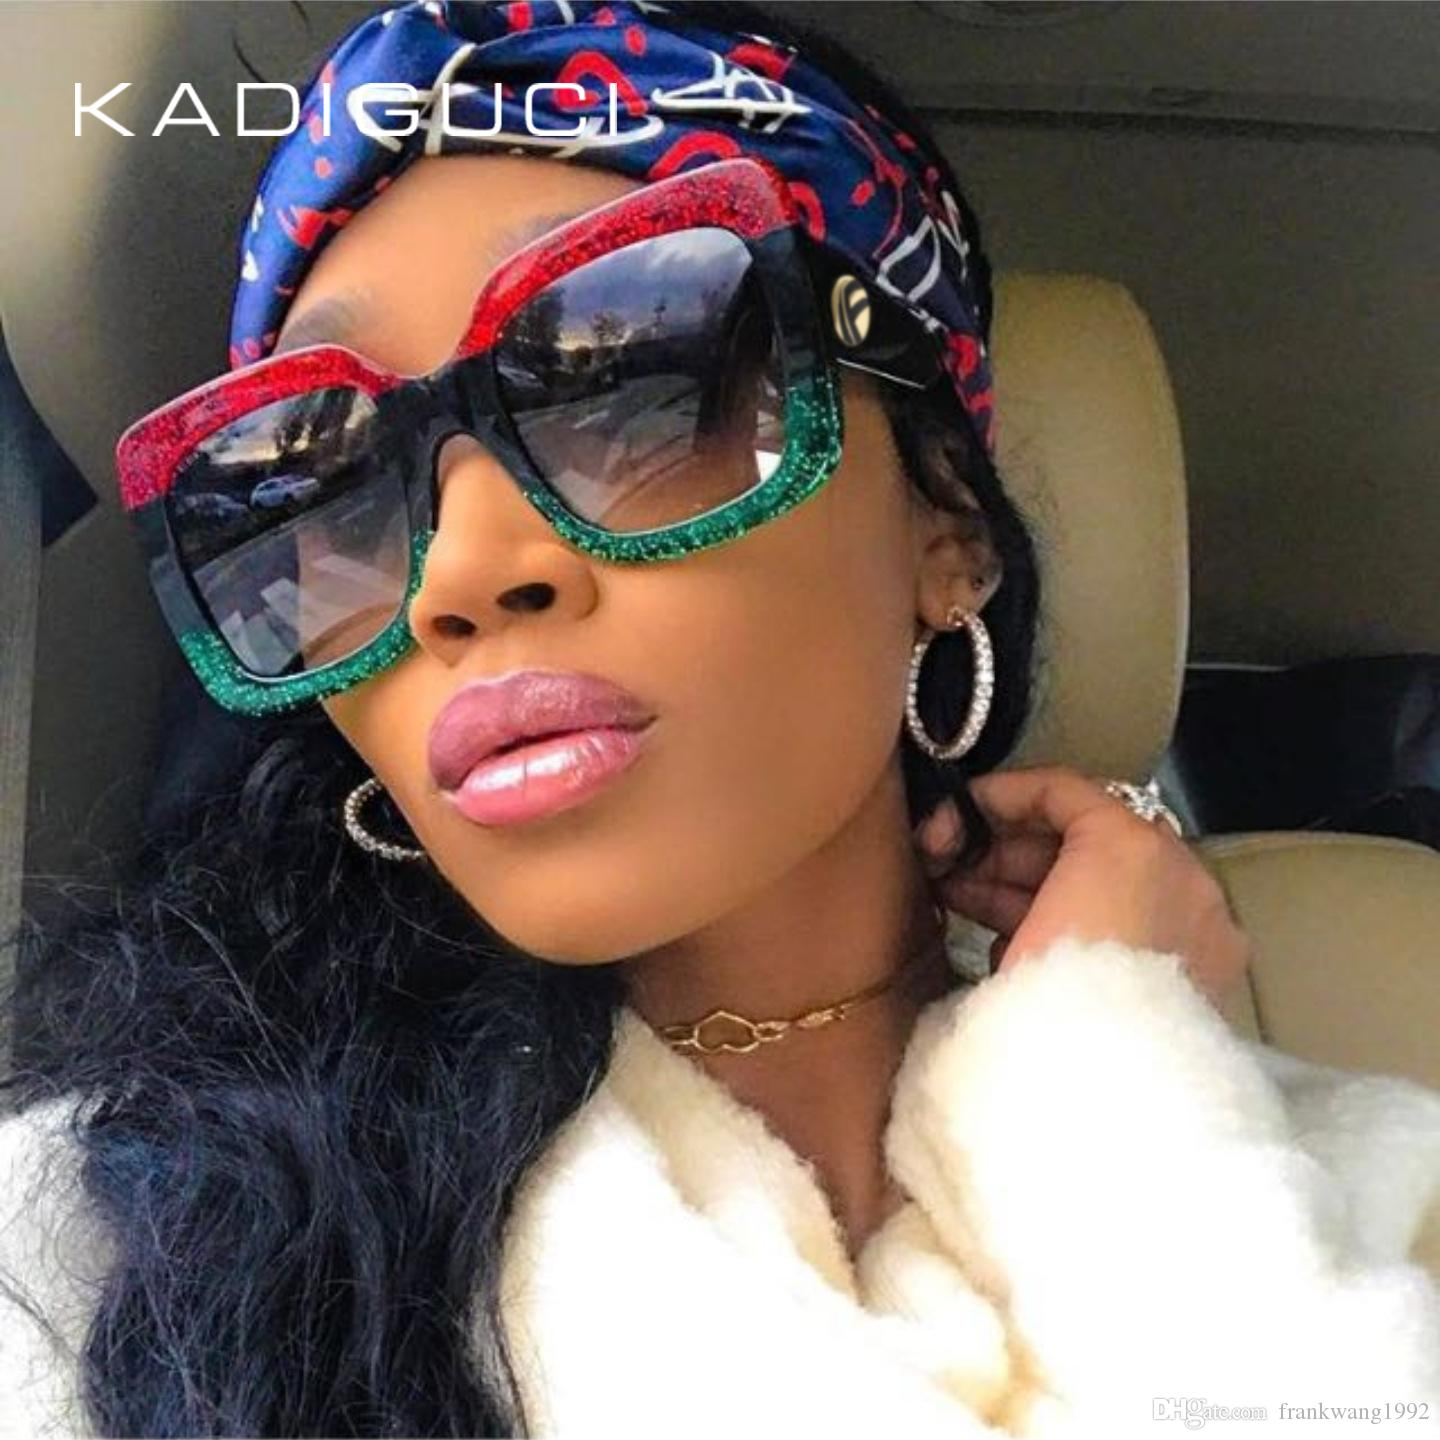 525444ad00 KADEGUCI Newest Oversized Square Sunglasses Women Luxury Brand ...